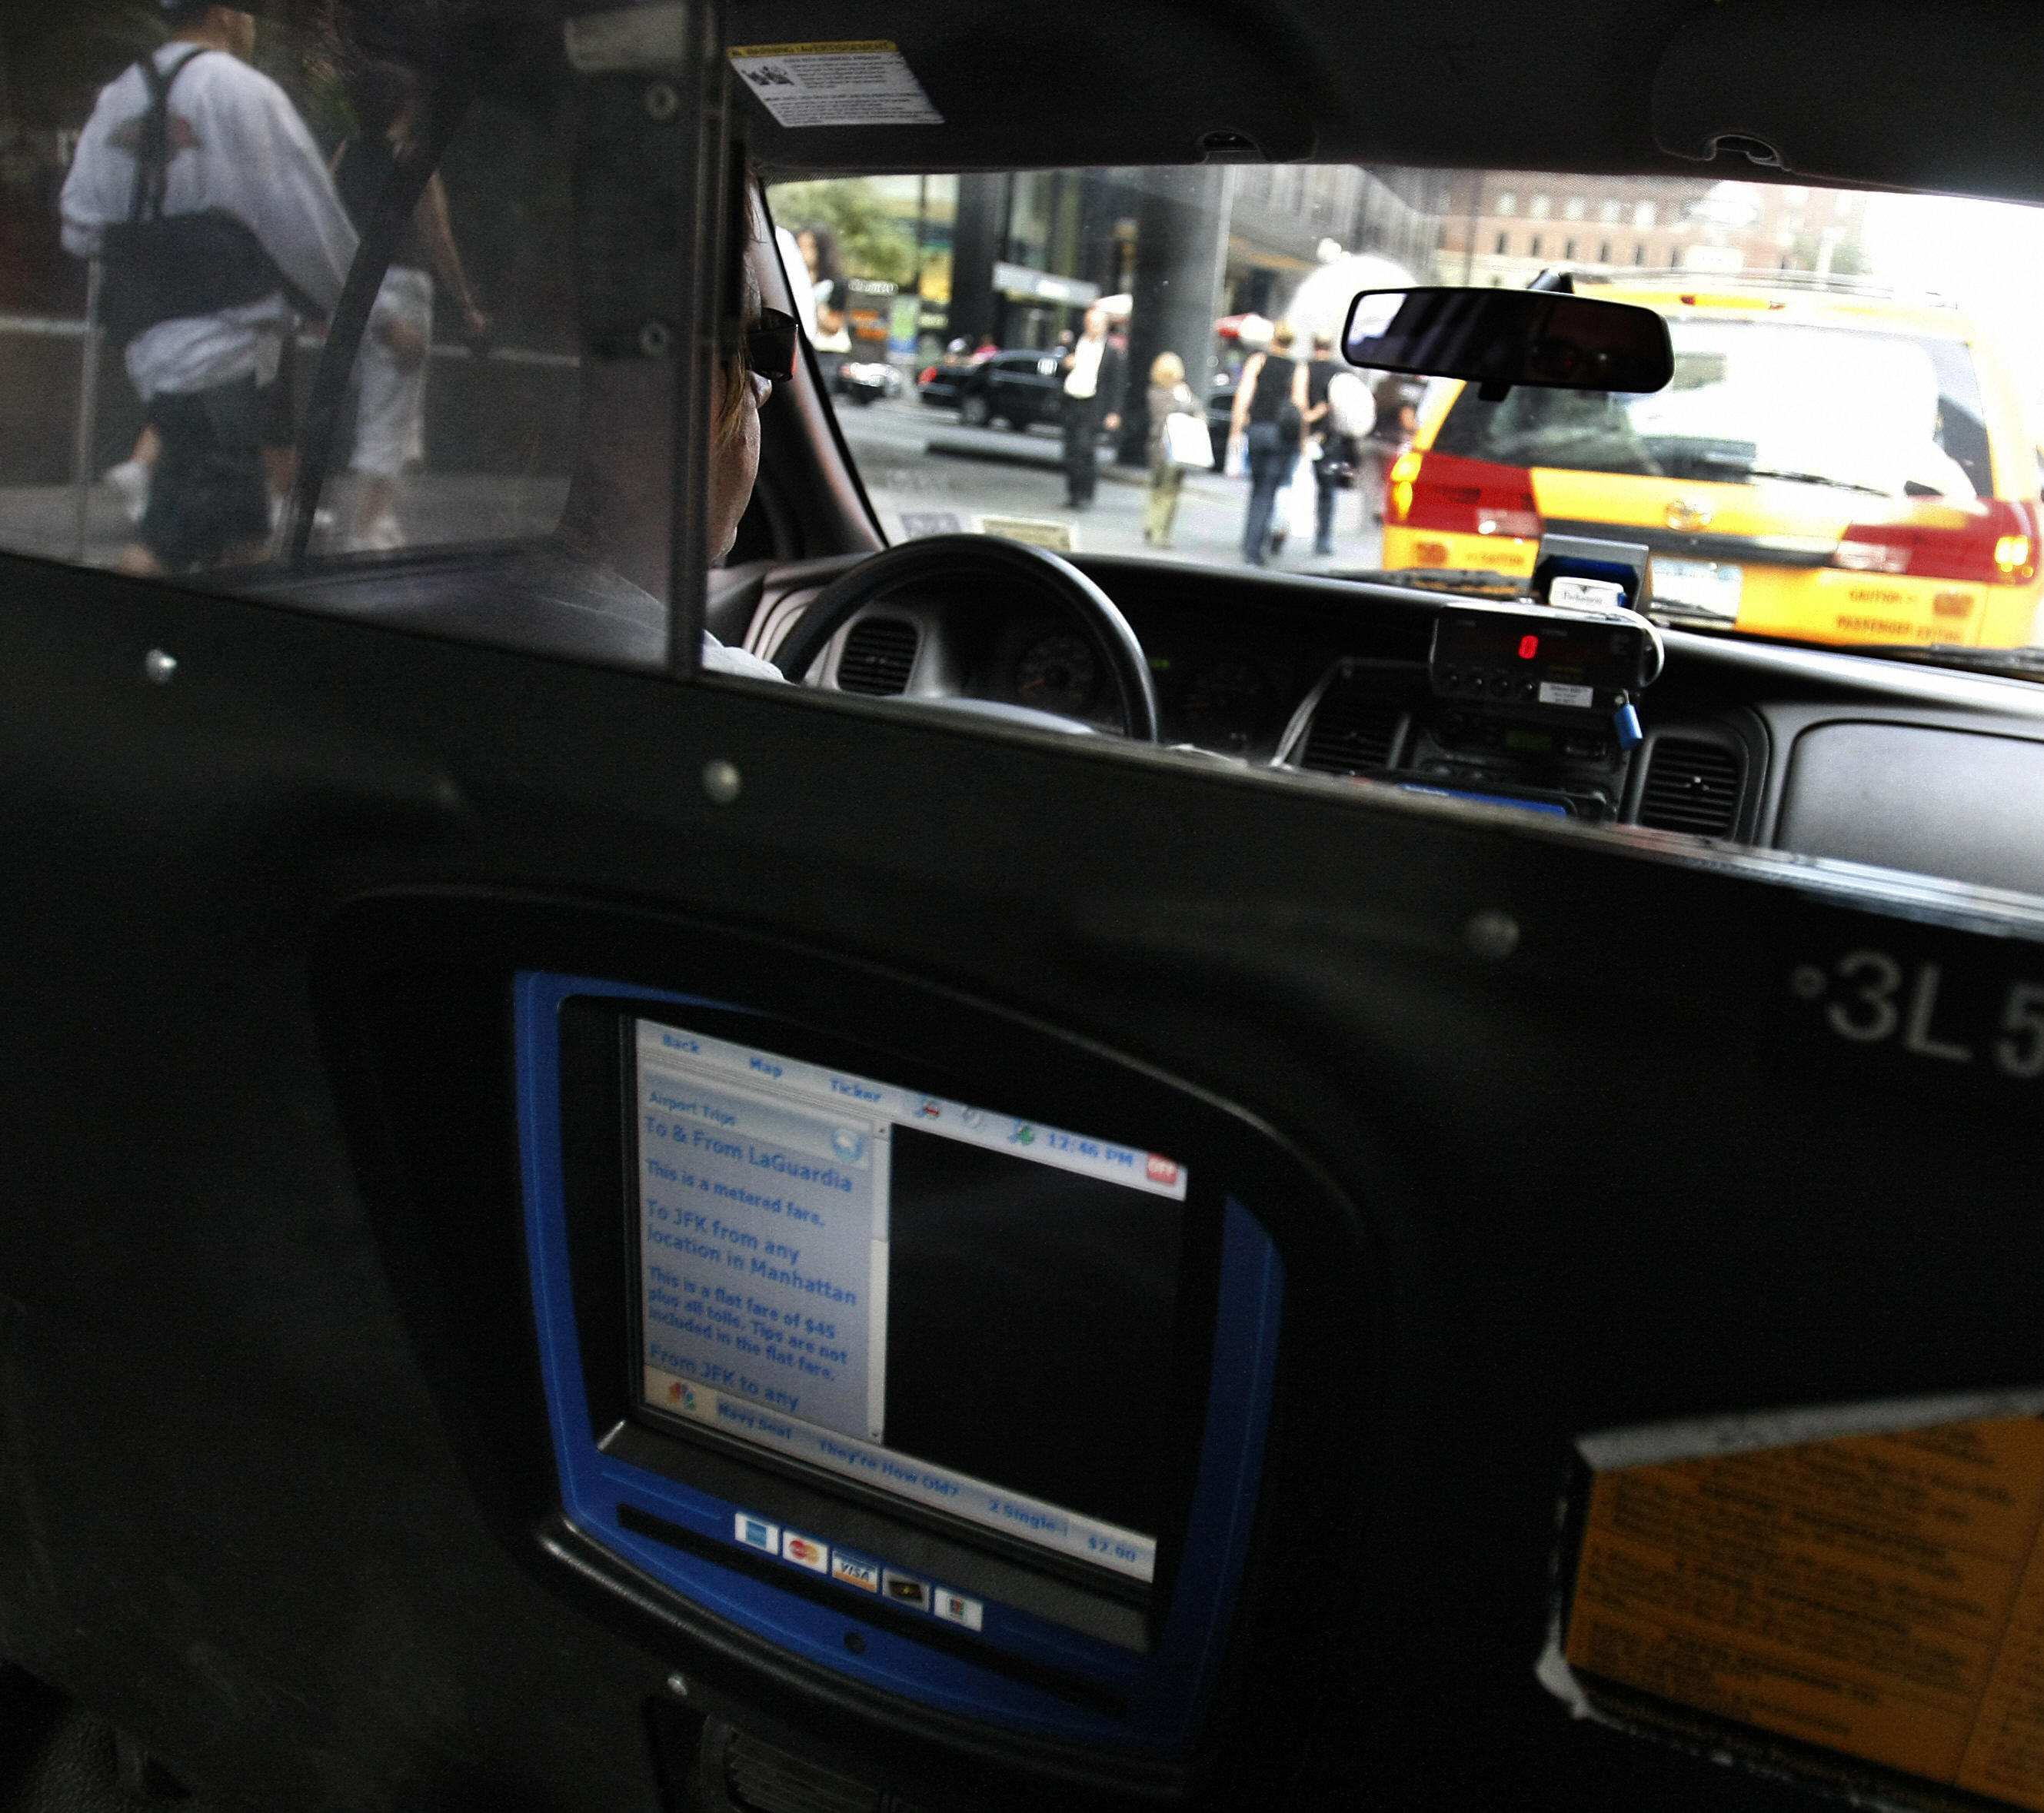 A New York City cab driver waits in line on 6th Avenue 22 October 2007.